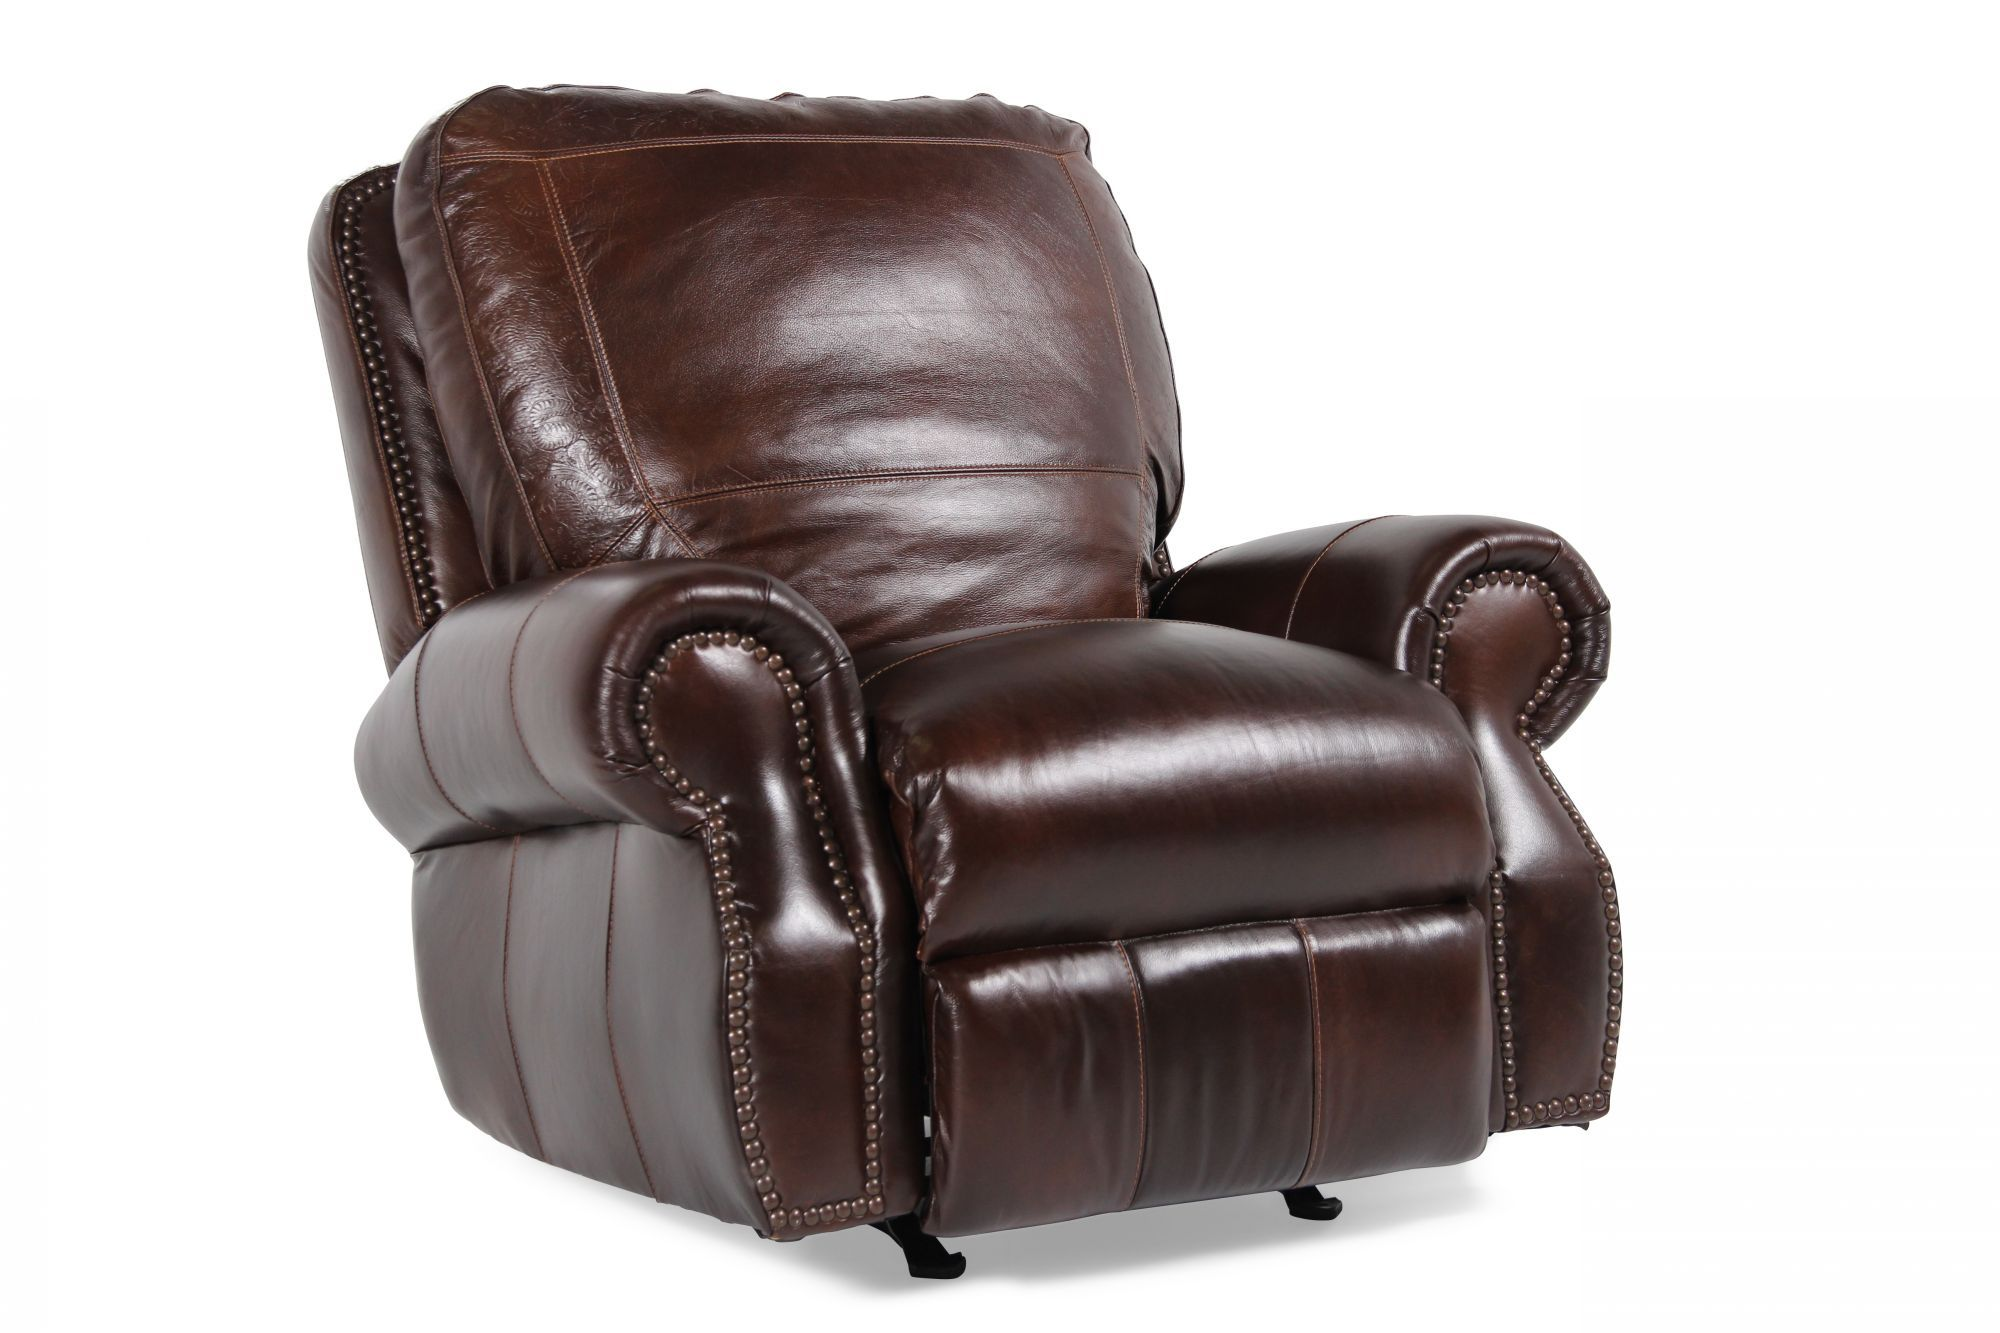 Prime Usa Leather Oak Paisley Leather Recliner Leather Recliner Machost Co Dining Chair Design Ideas Machostcouk